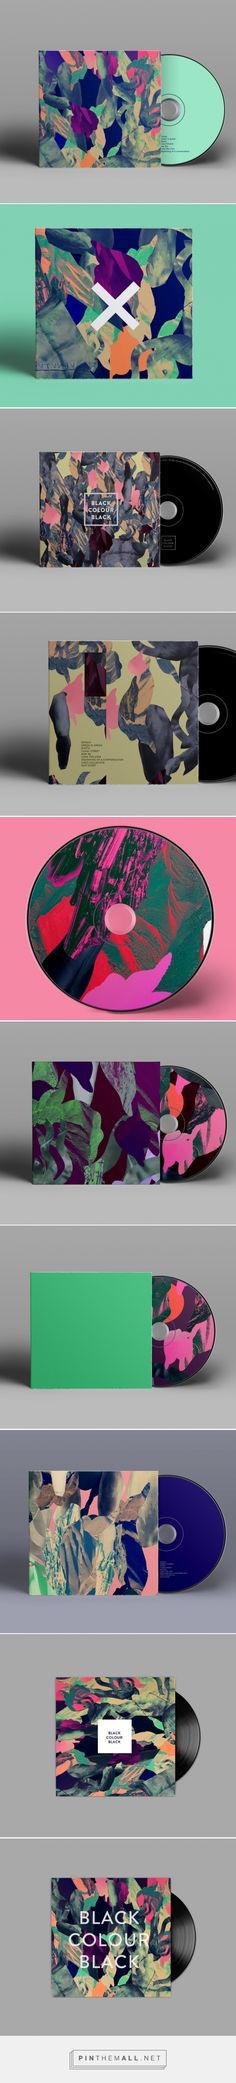 Make me some music Colorful collages for music packaging Designed by Anna Katrin Karlsson Cd Design, Album Cover Design, Poster Design, Packaging Design, Branding Design, Logo Design, Cd Packaging, Conception Album, Typography Design